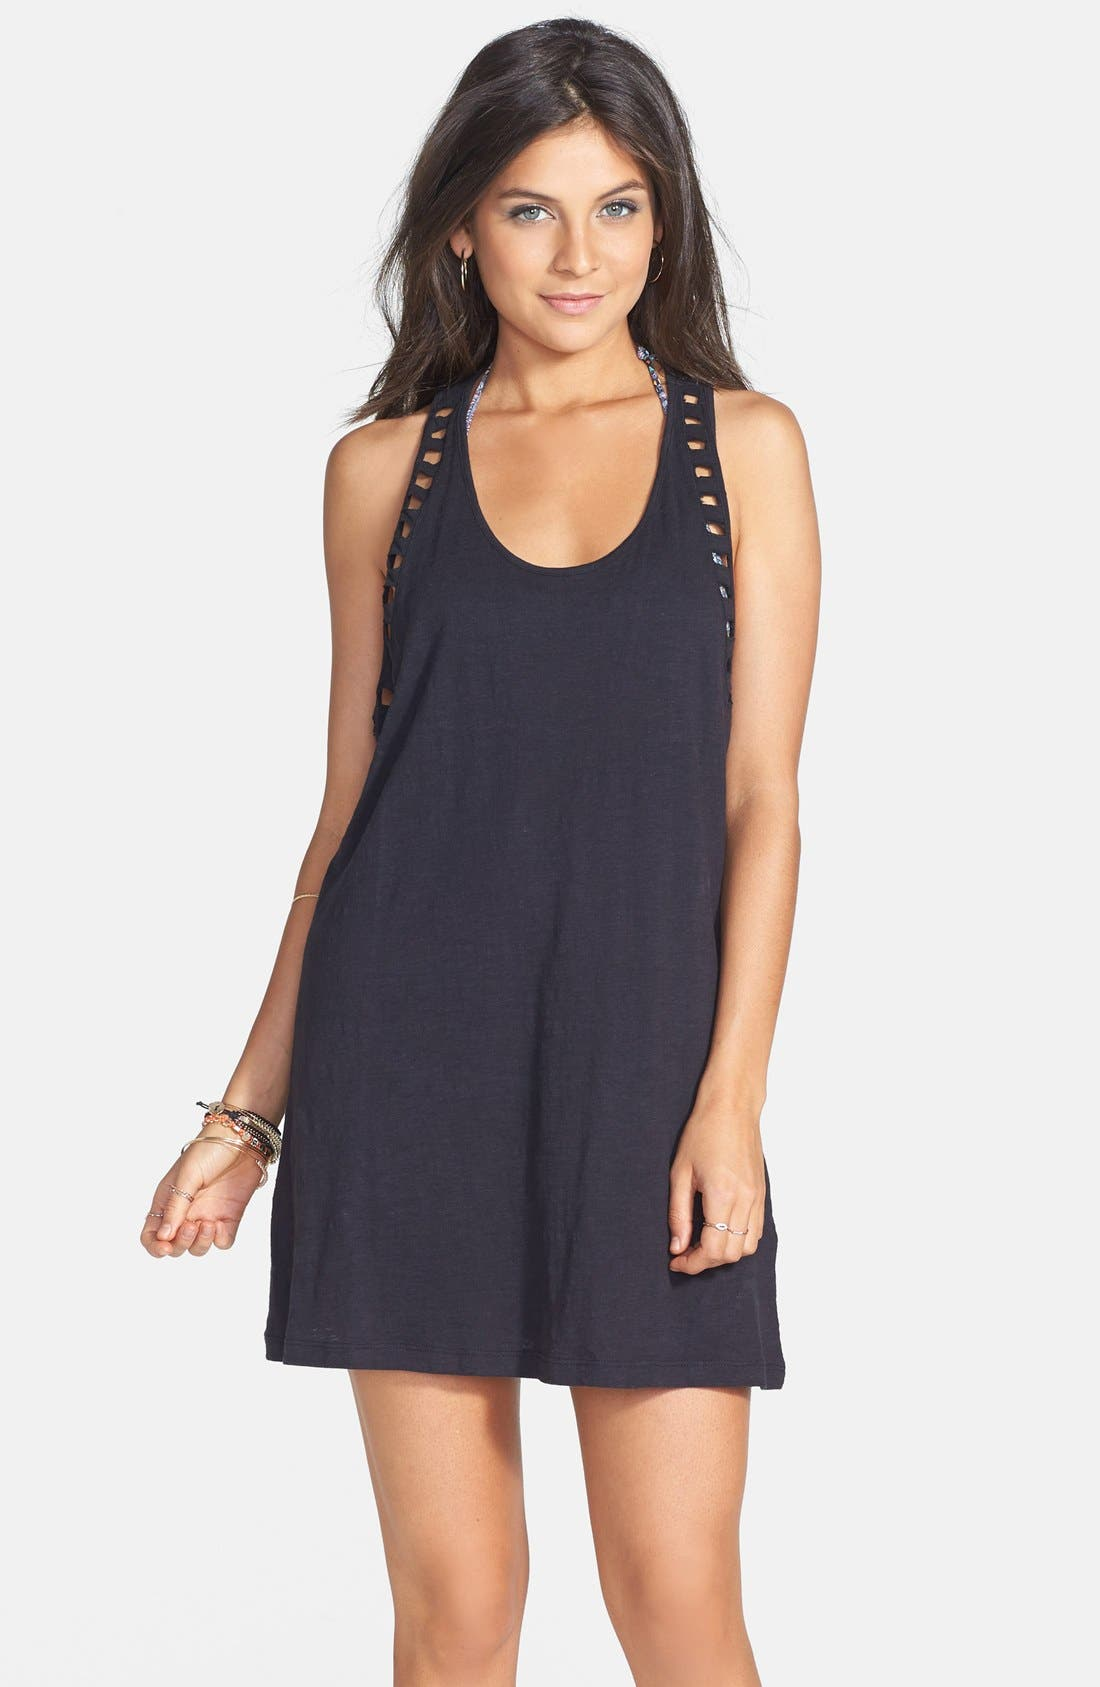 Alternate Image 1 Selected - Volcom 'Walk on By' Cutout Babydoll Dress